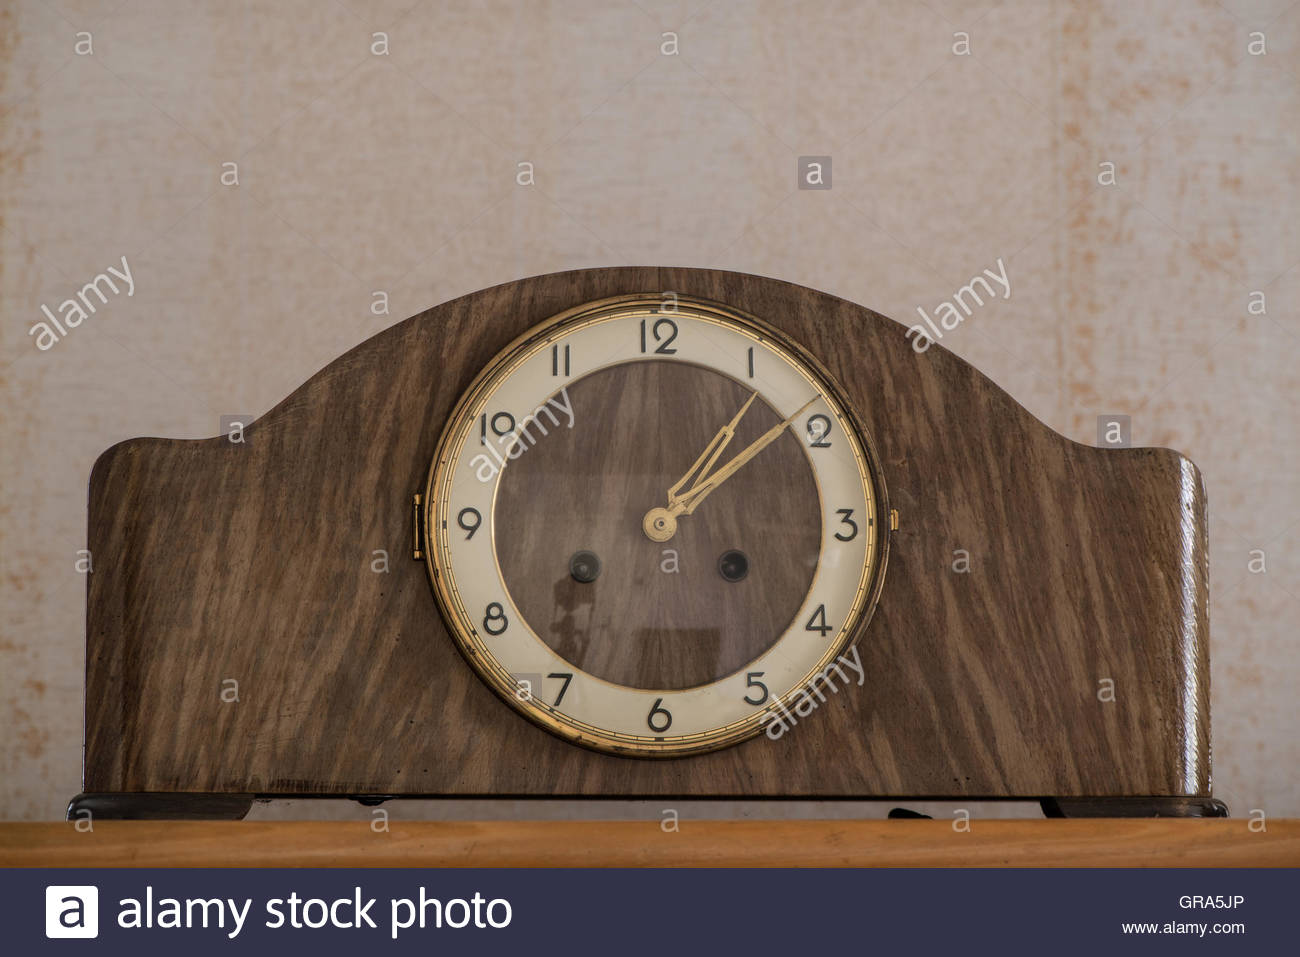 Living Room Clock From The Fifties Stock Photo